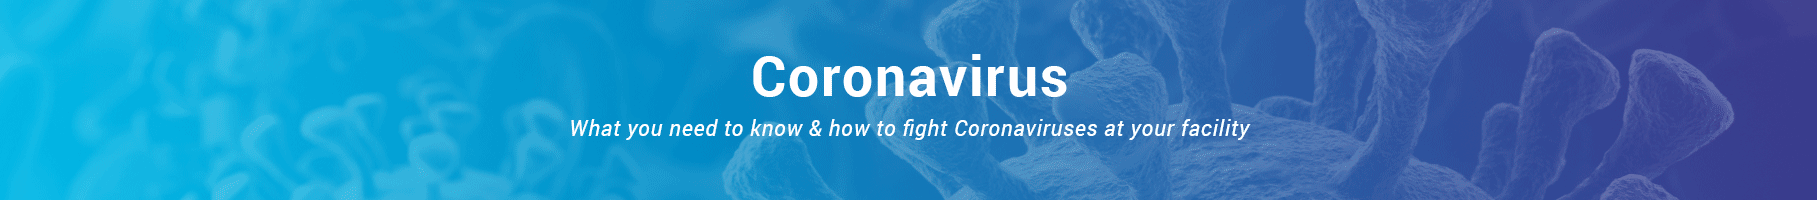 Coronavirus - What you need to know and how to fight Coronaviruses at your facility